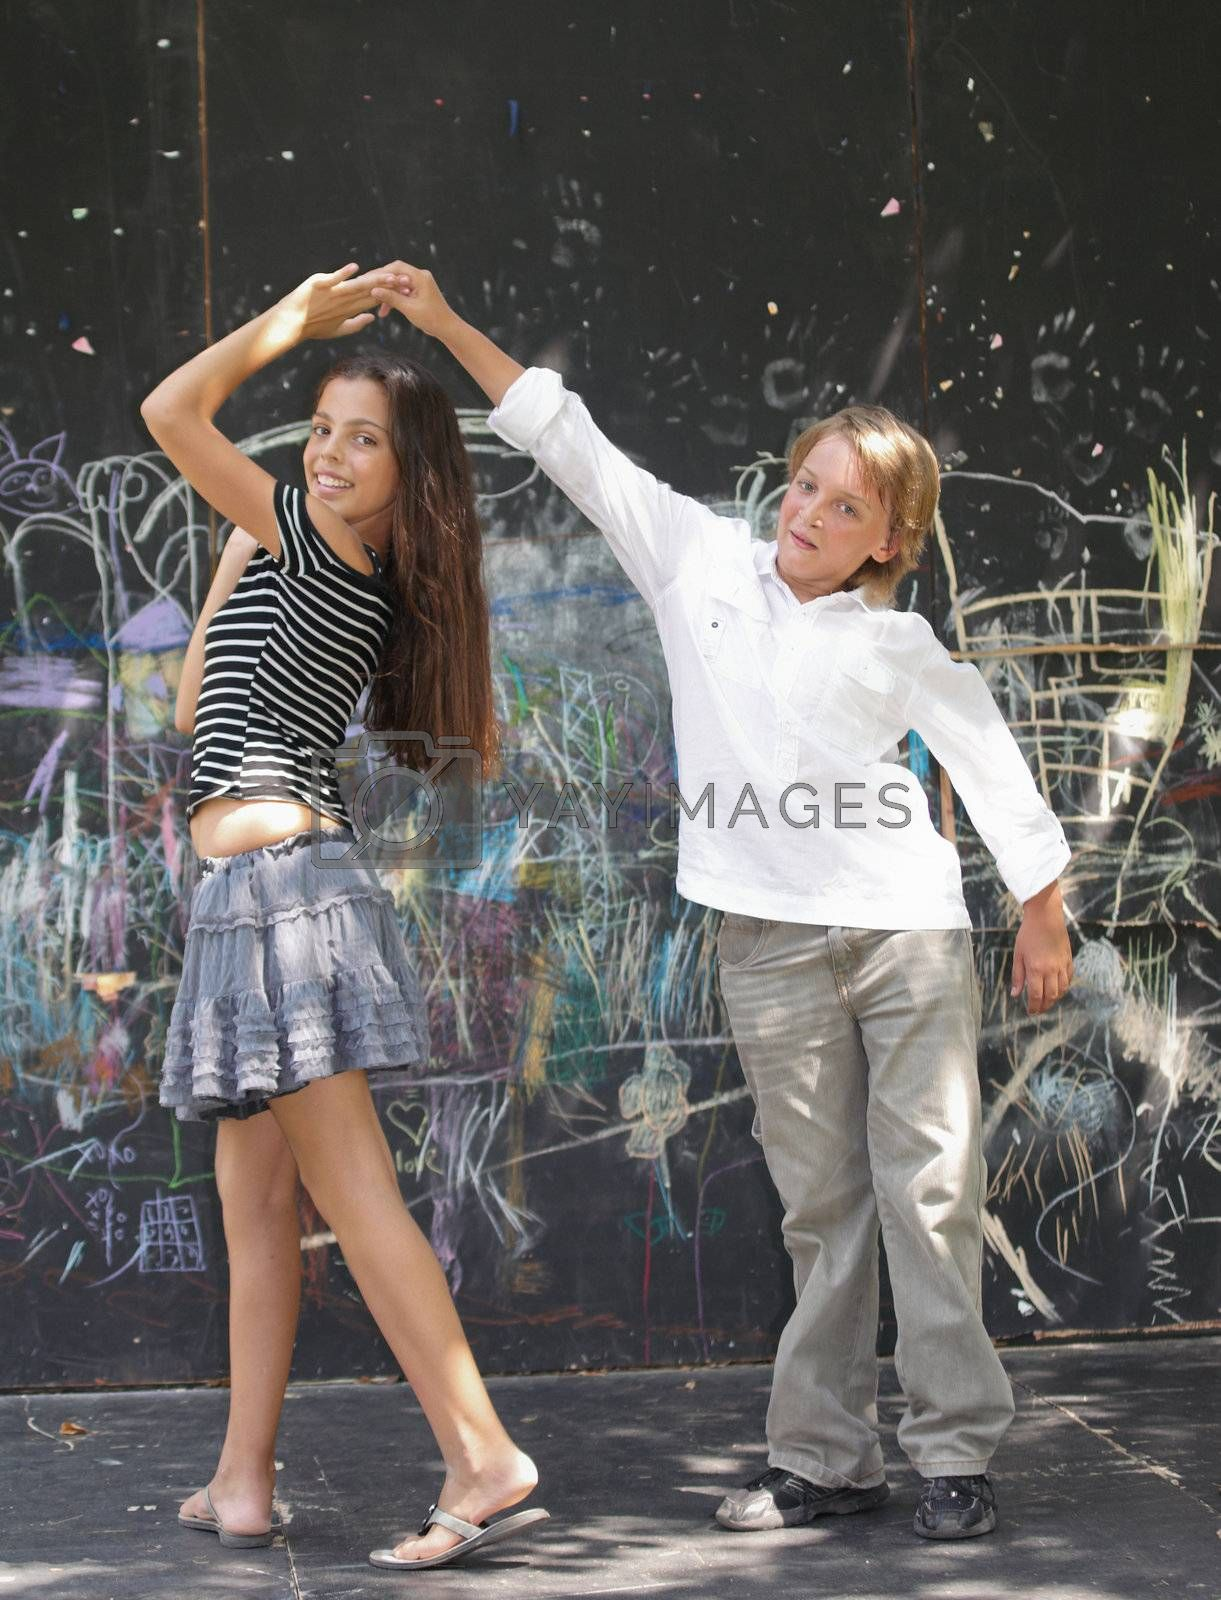 Portrait of a girl dancing near a wall with graffiti.